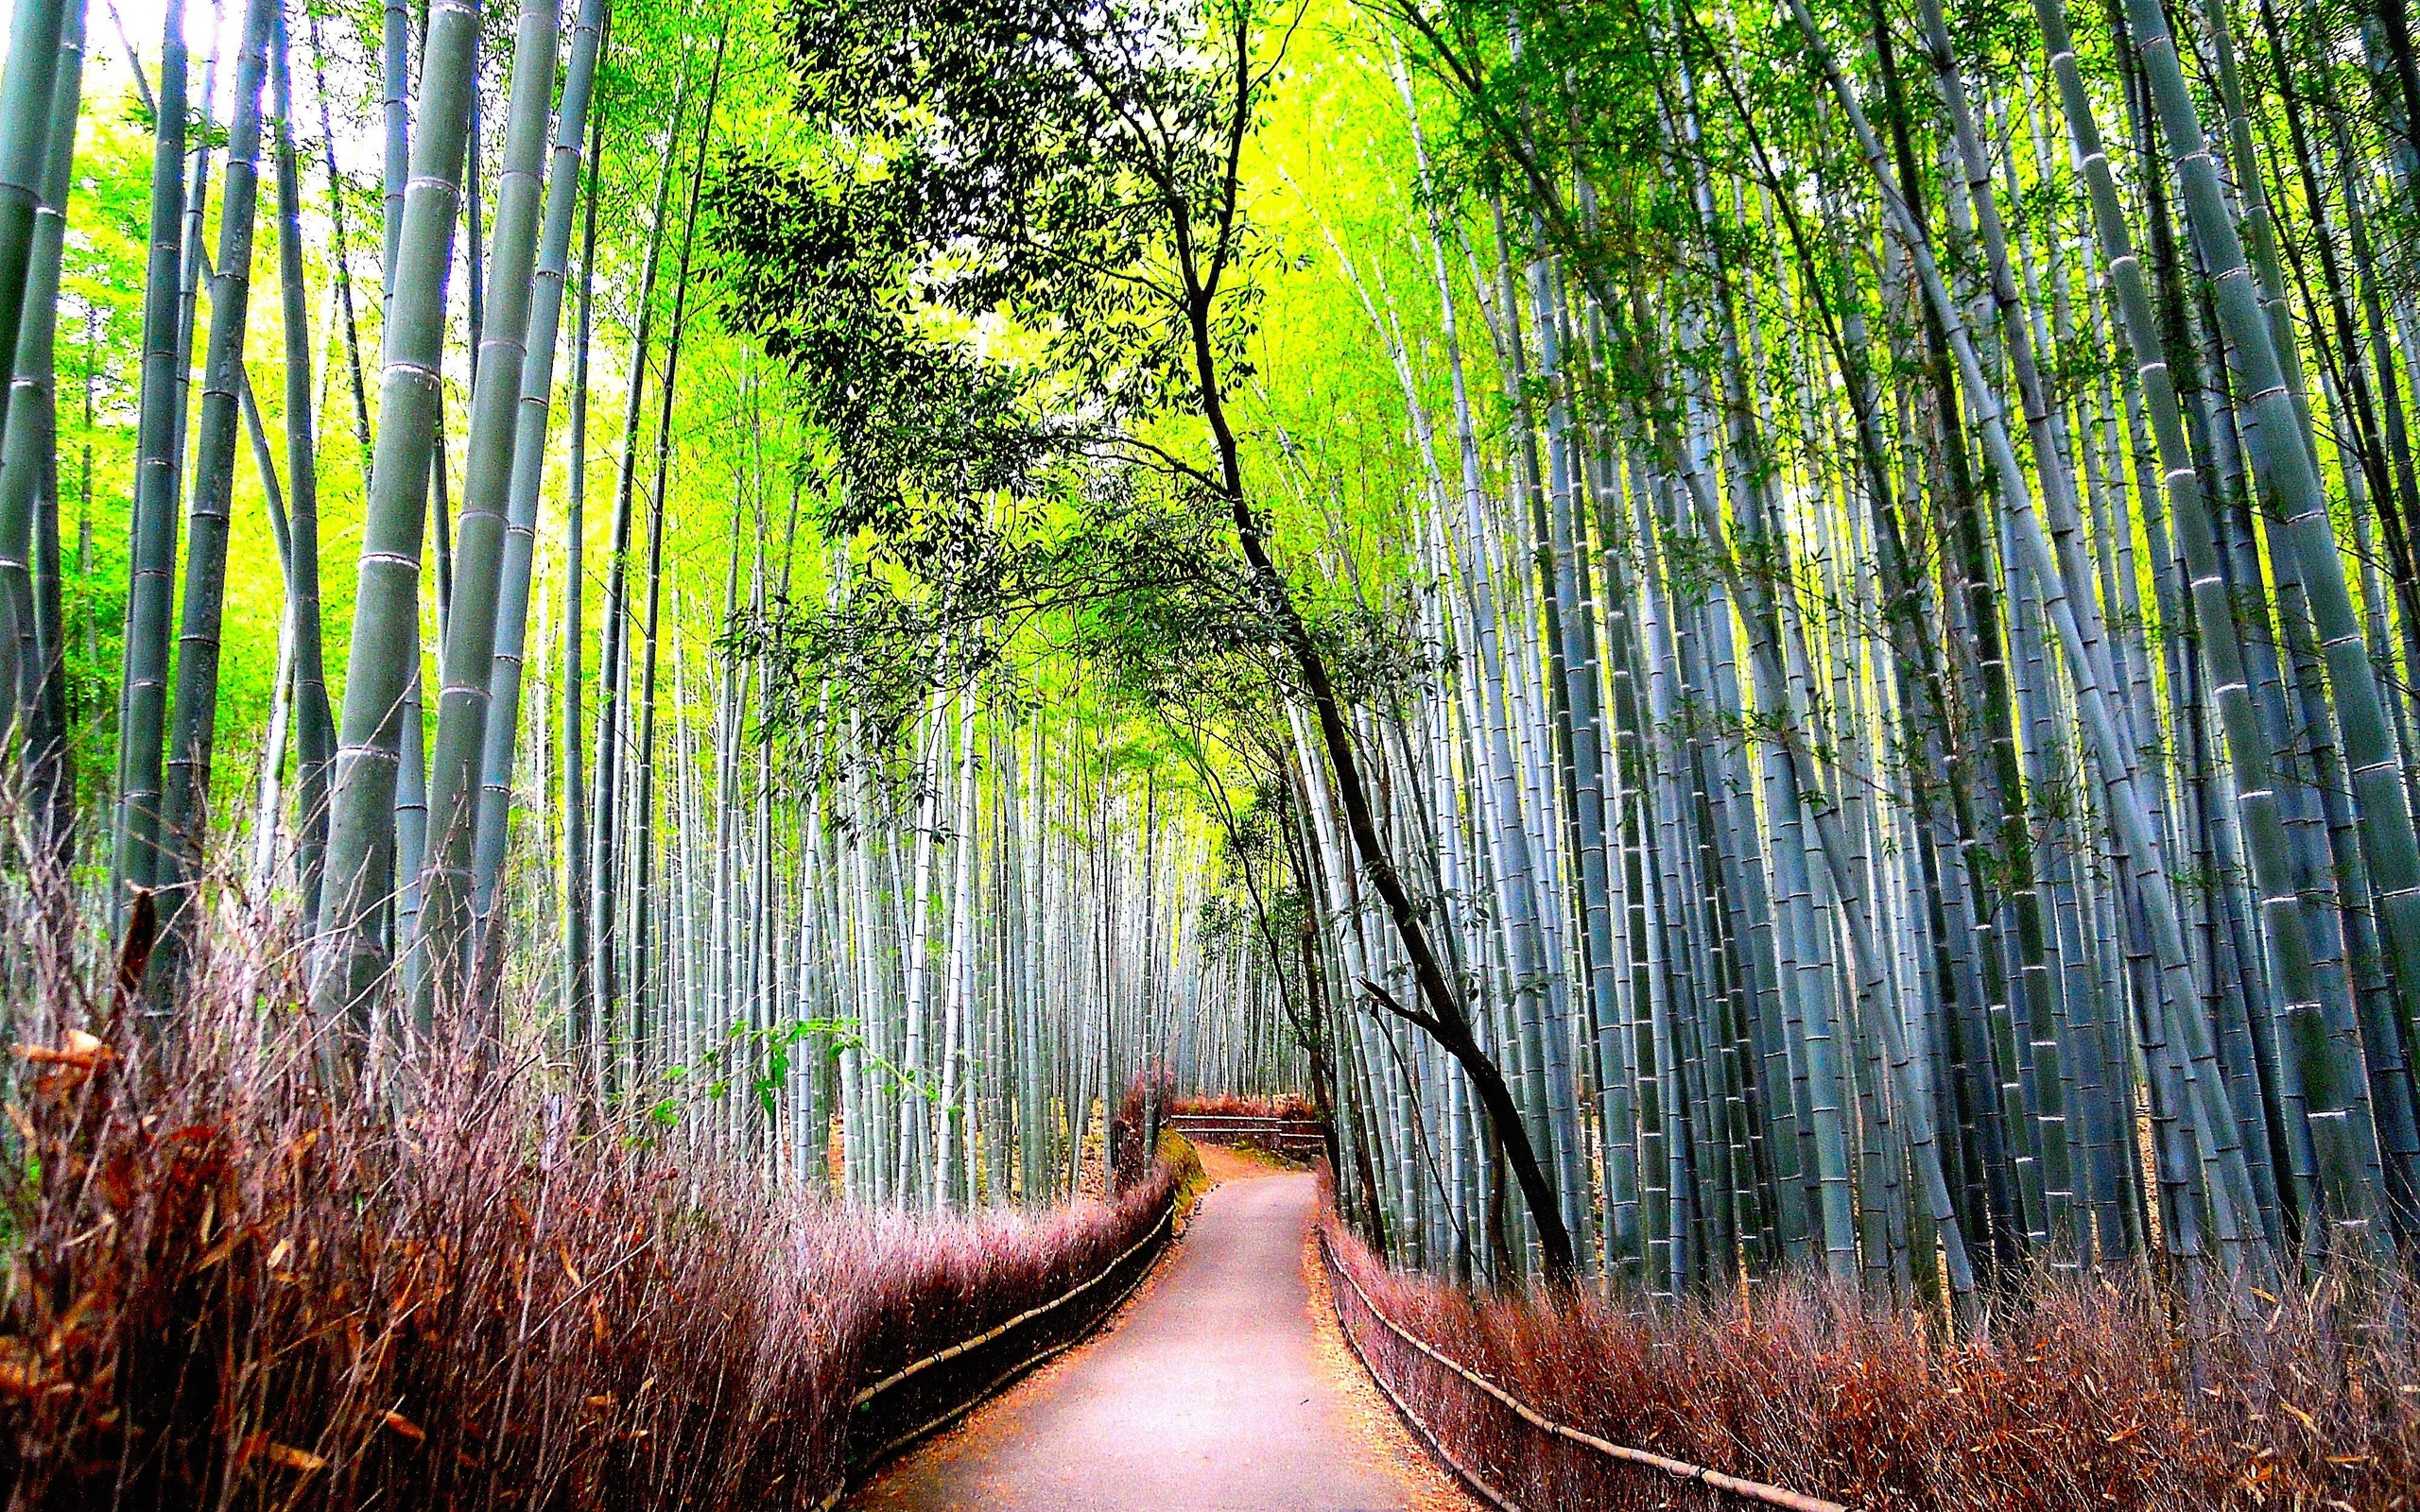 bamboo forest road nature wallpaper | 2560x1600 | 153357 | wallpaperup